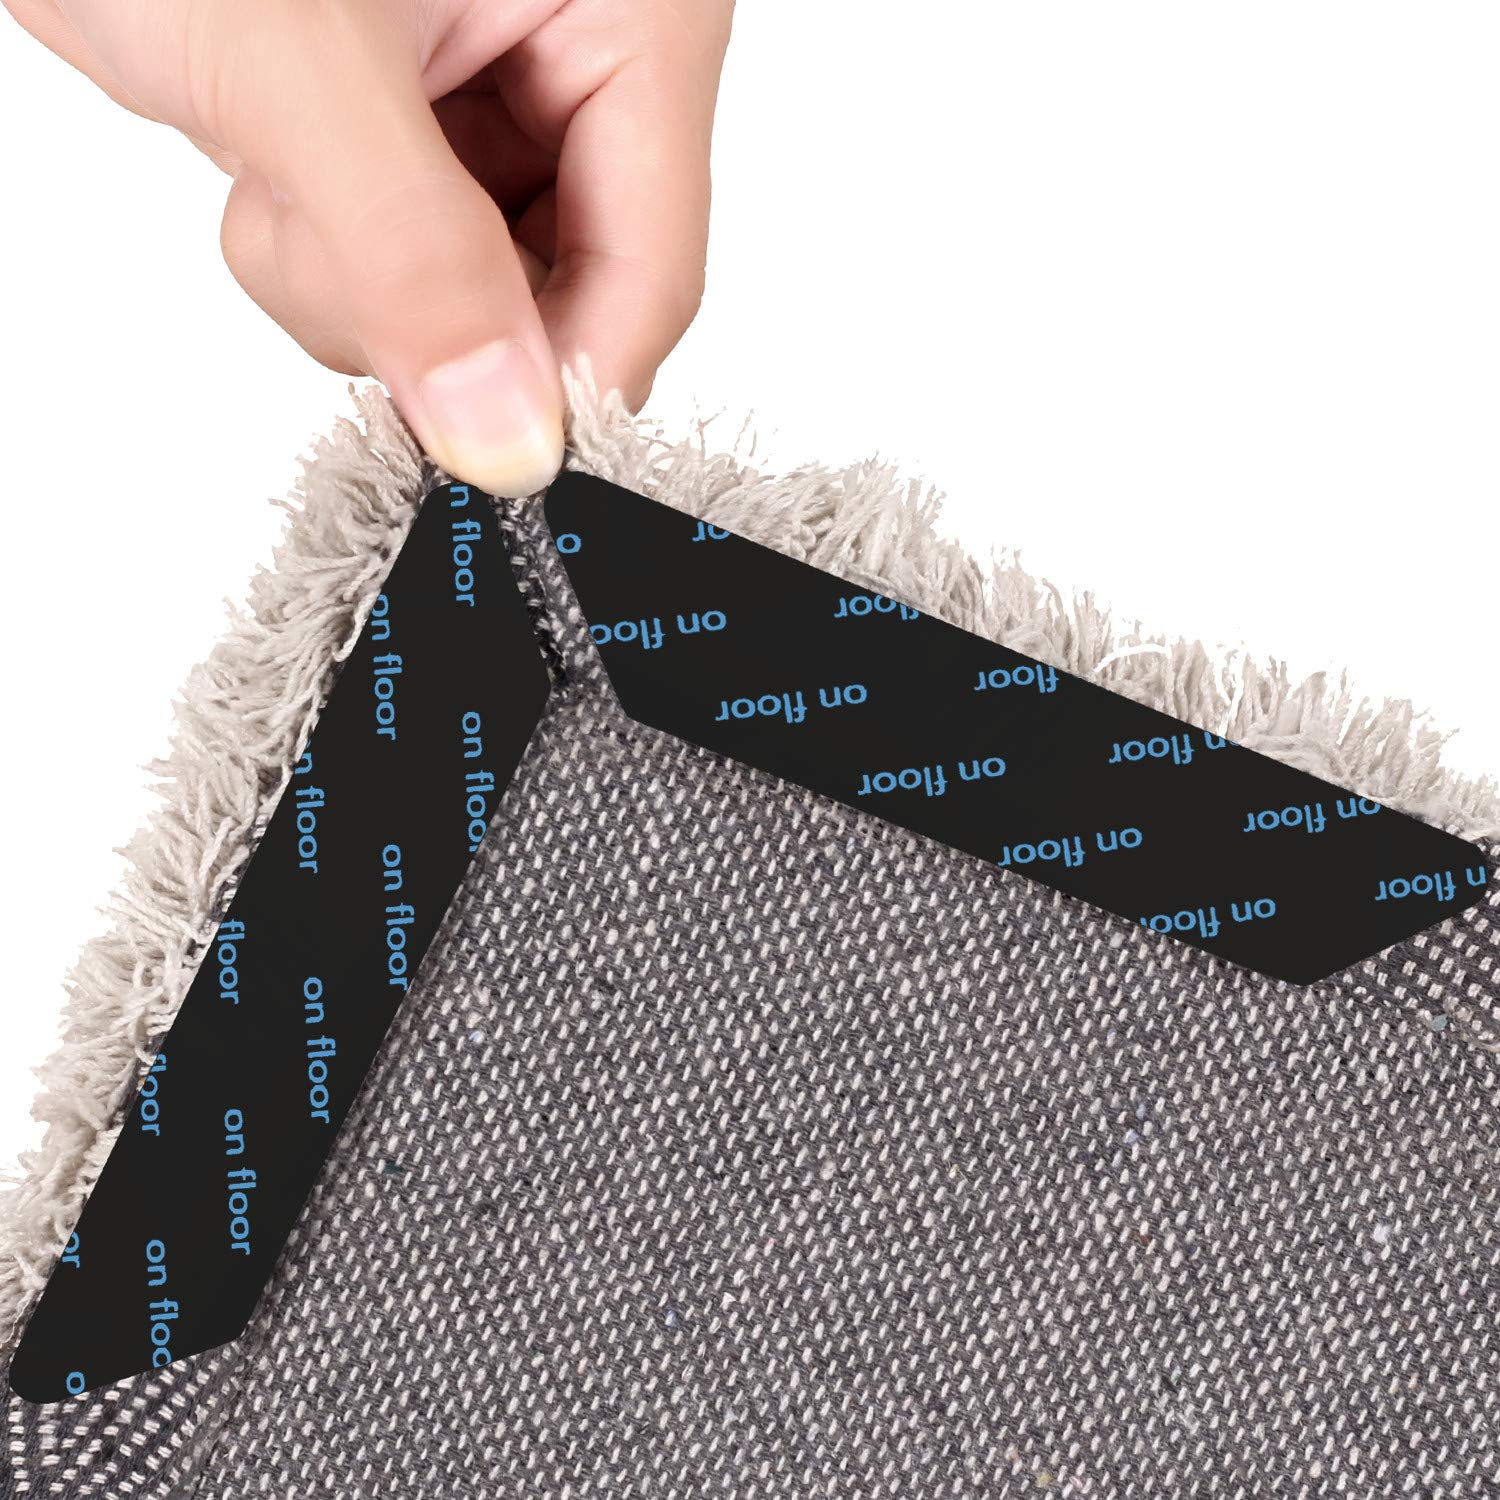 TZAMCW Rug Grippers, 12PCS Anti Curling Carpet Grippers with Renewable Gripper Tape Ideal Anti Slip Rug Pad for Your Rugs,Keeps Your Rug in Place and Makes Corners Edge Flat